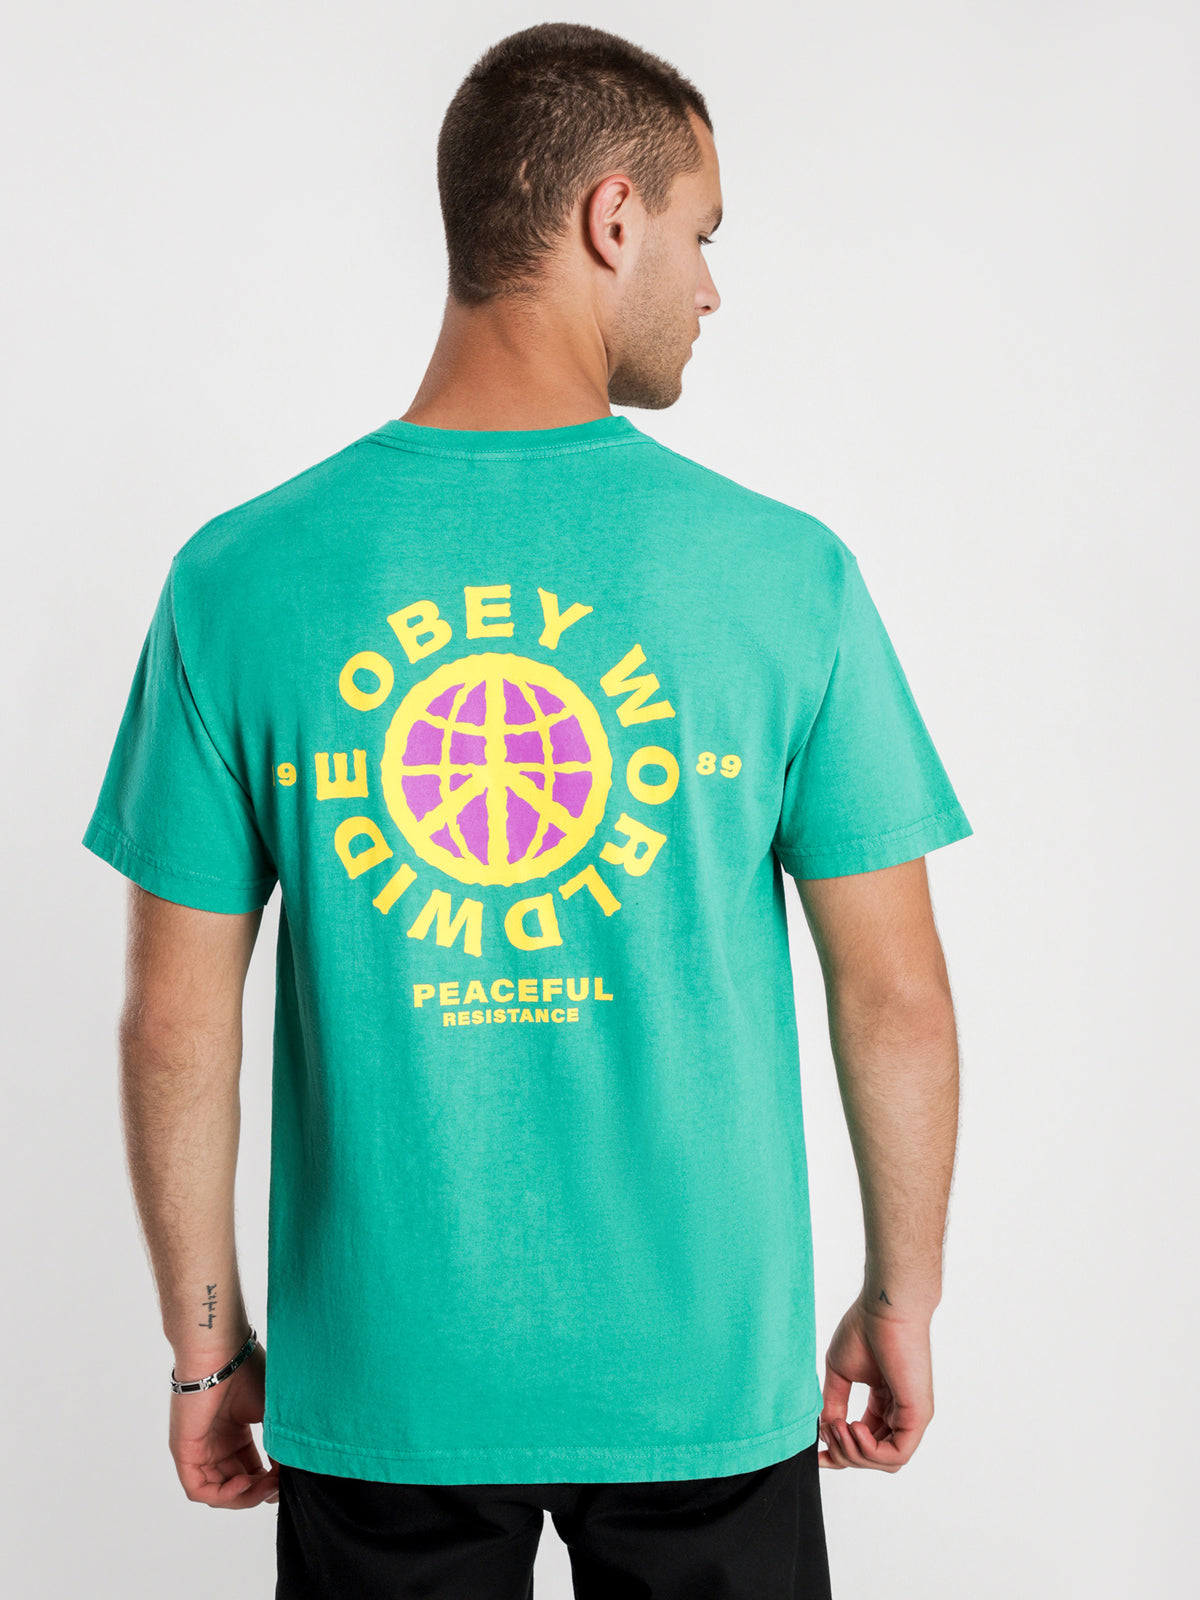 Obey Peaceful Resistance T-Shirt in Emerald